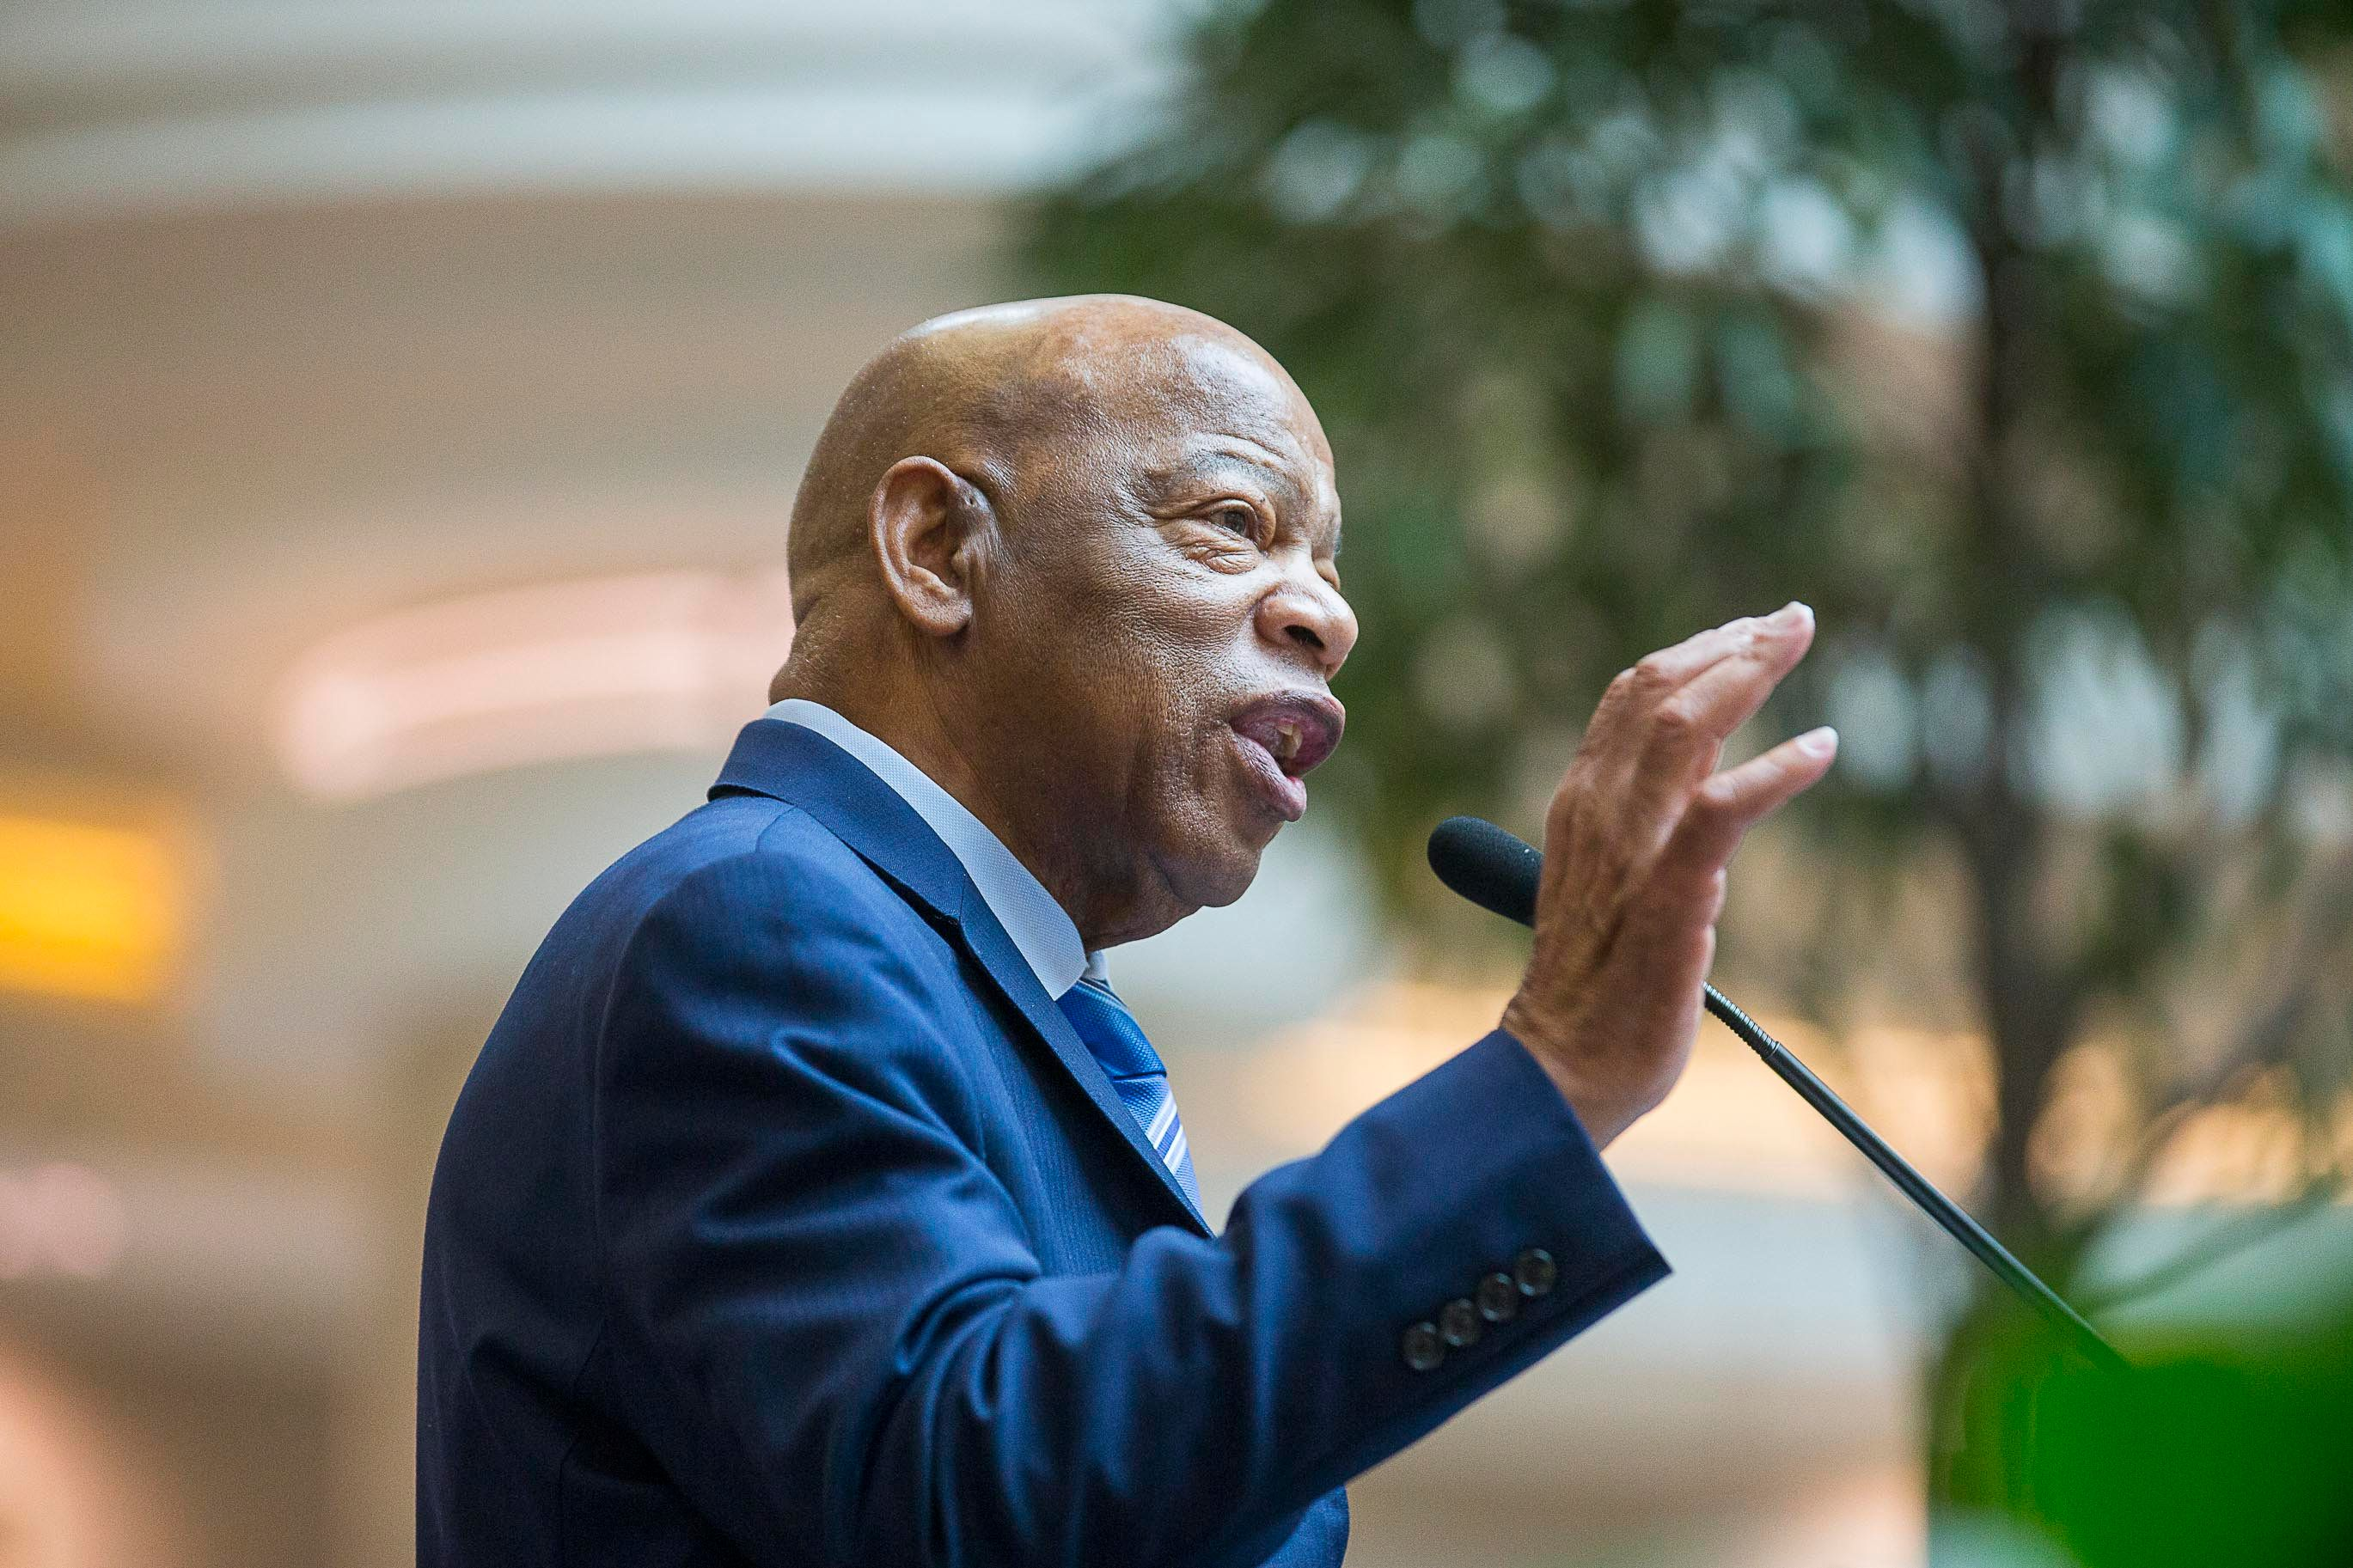 "Congressman John Lewis speaks during his art exhibit tribute in the atrium of the domestic terminal at Atlanta's Hartsfield Jackson International Airport, Monday, April 8, 2019. The art exhibit ""John Lewis-Good Trouble"" was unveiled Monday with historical artifacts, audio and visual installations and tributes to the congressman. (Alyssa Pointer/Atlanta Journal-Constitution via AP)"